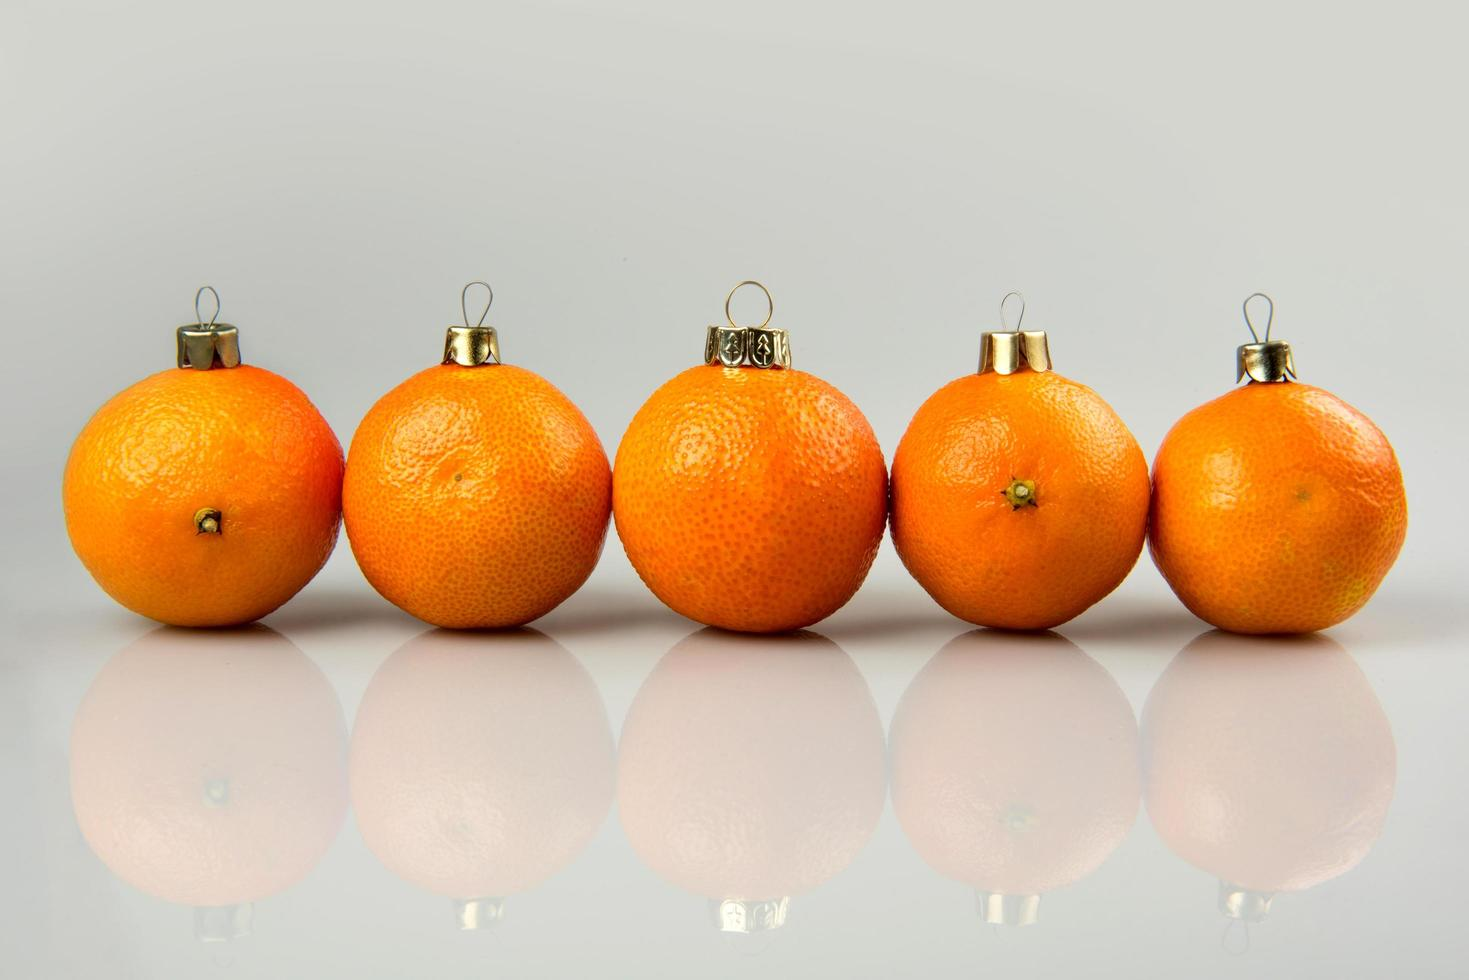 Baubles made of tangerines photo